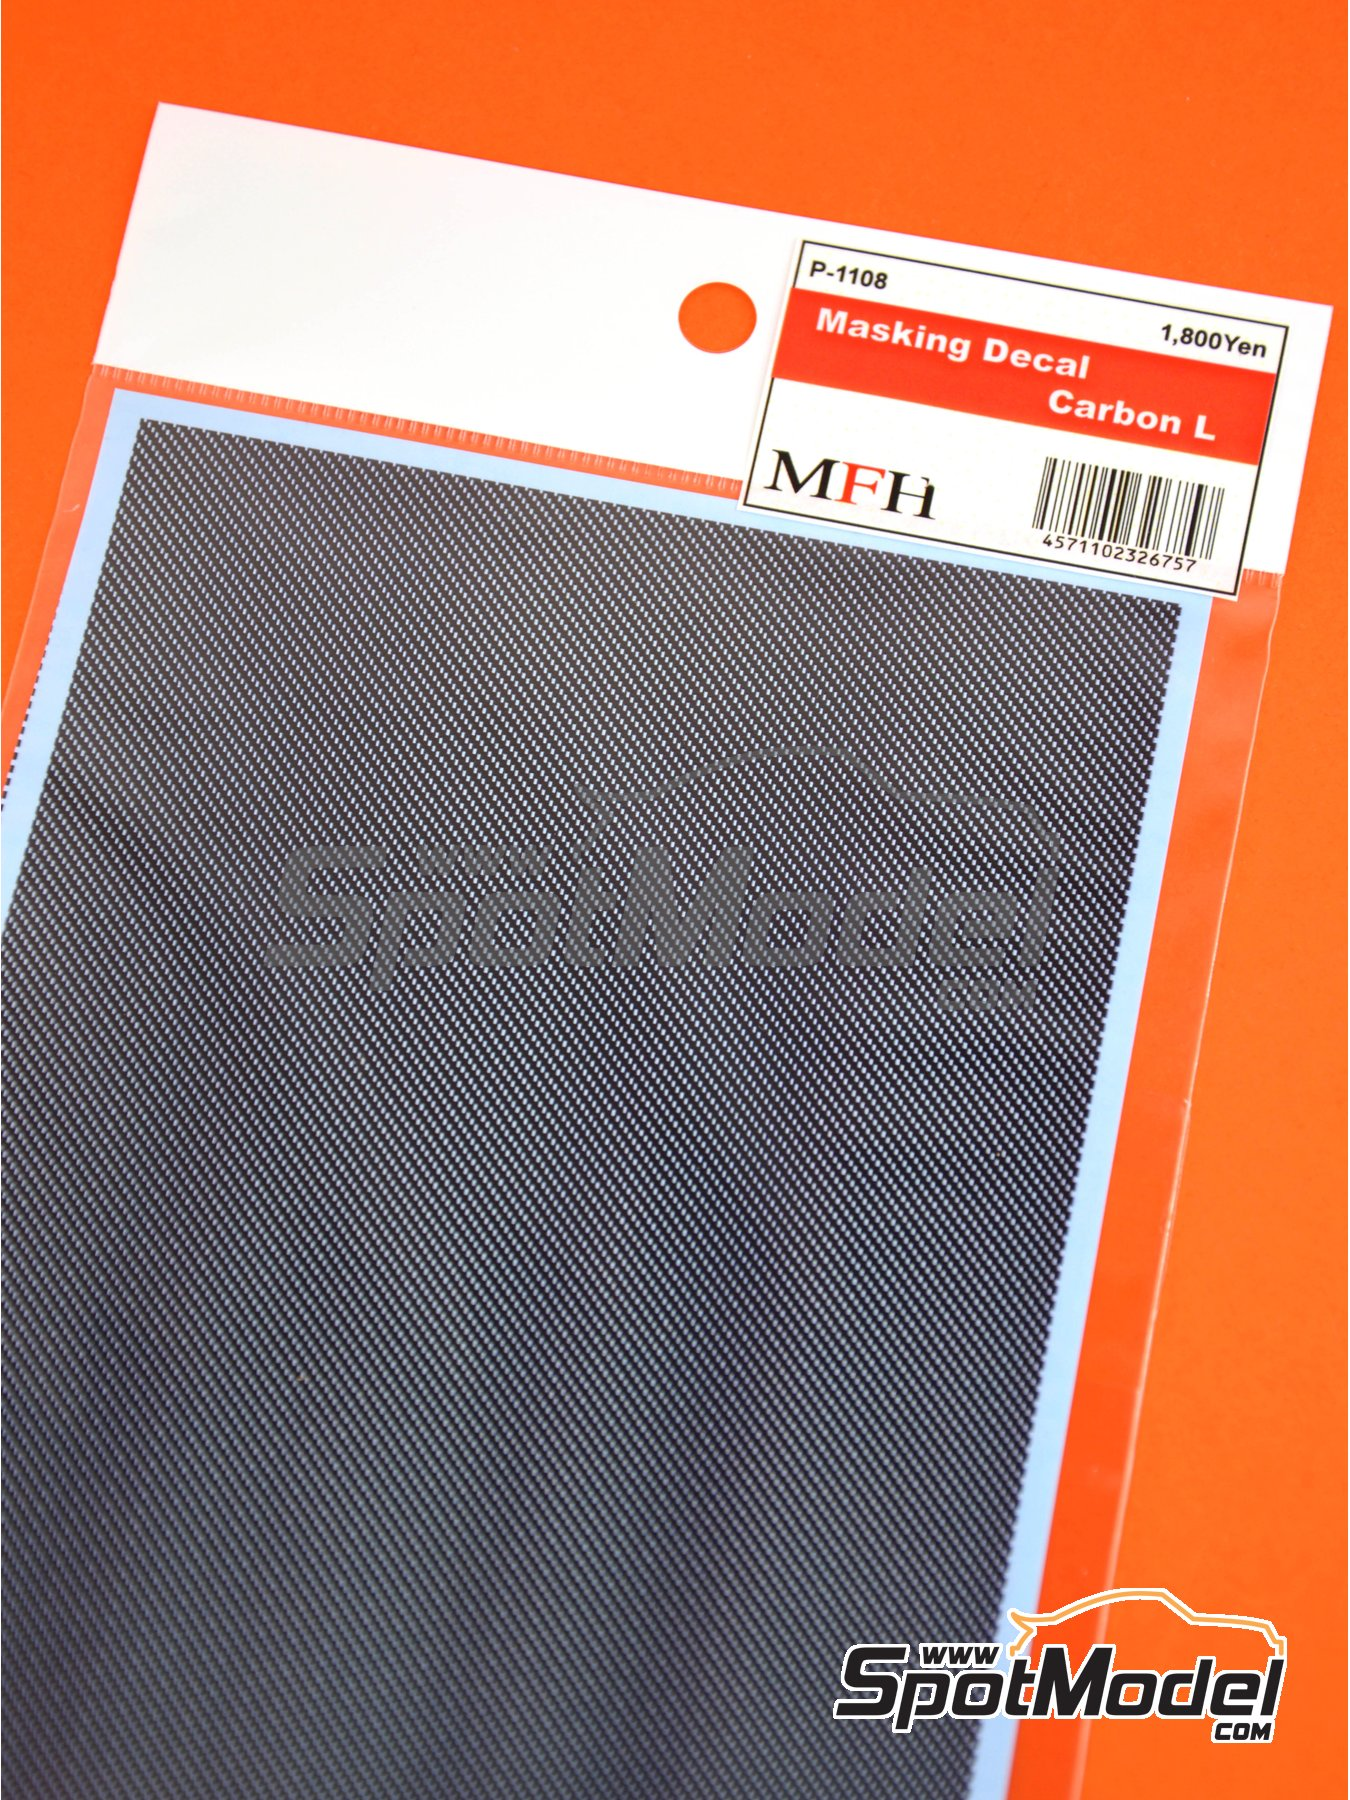 Large carbon fiber pattern | Masks manufactured by Model Factory Hiro (ref. MFH-P1108) image